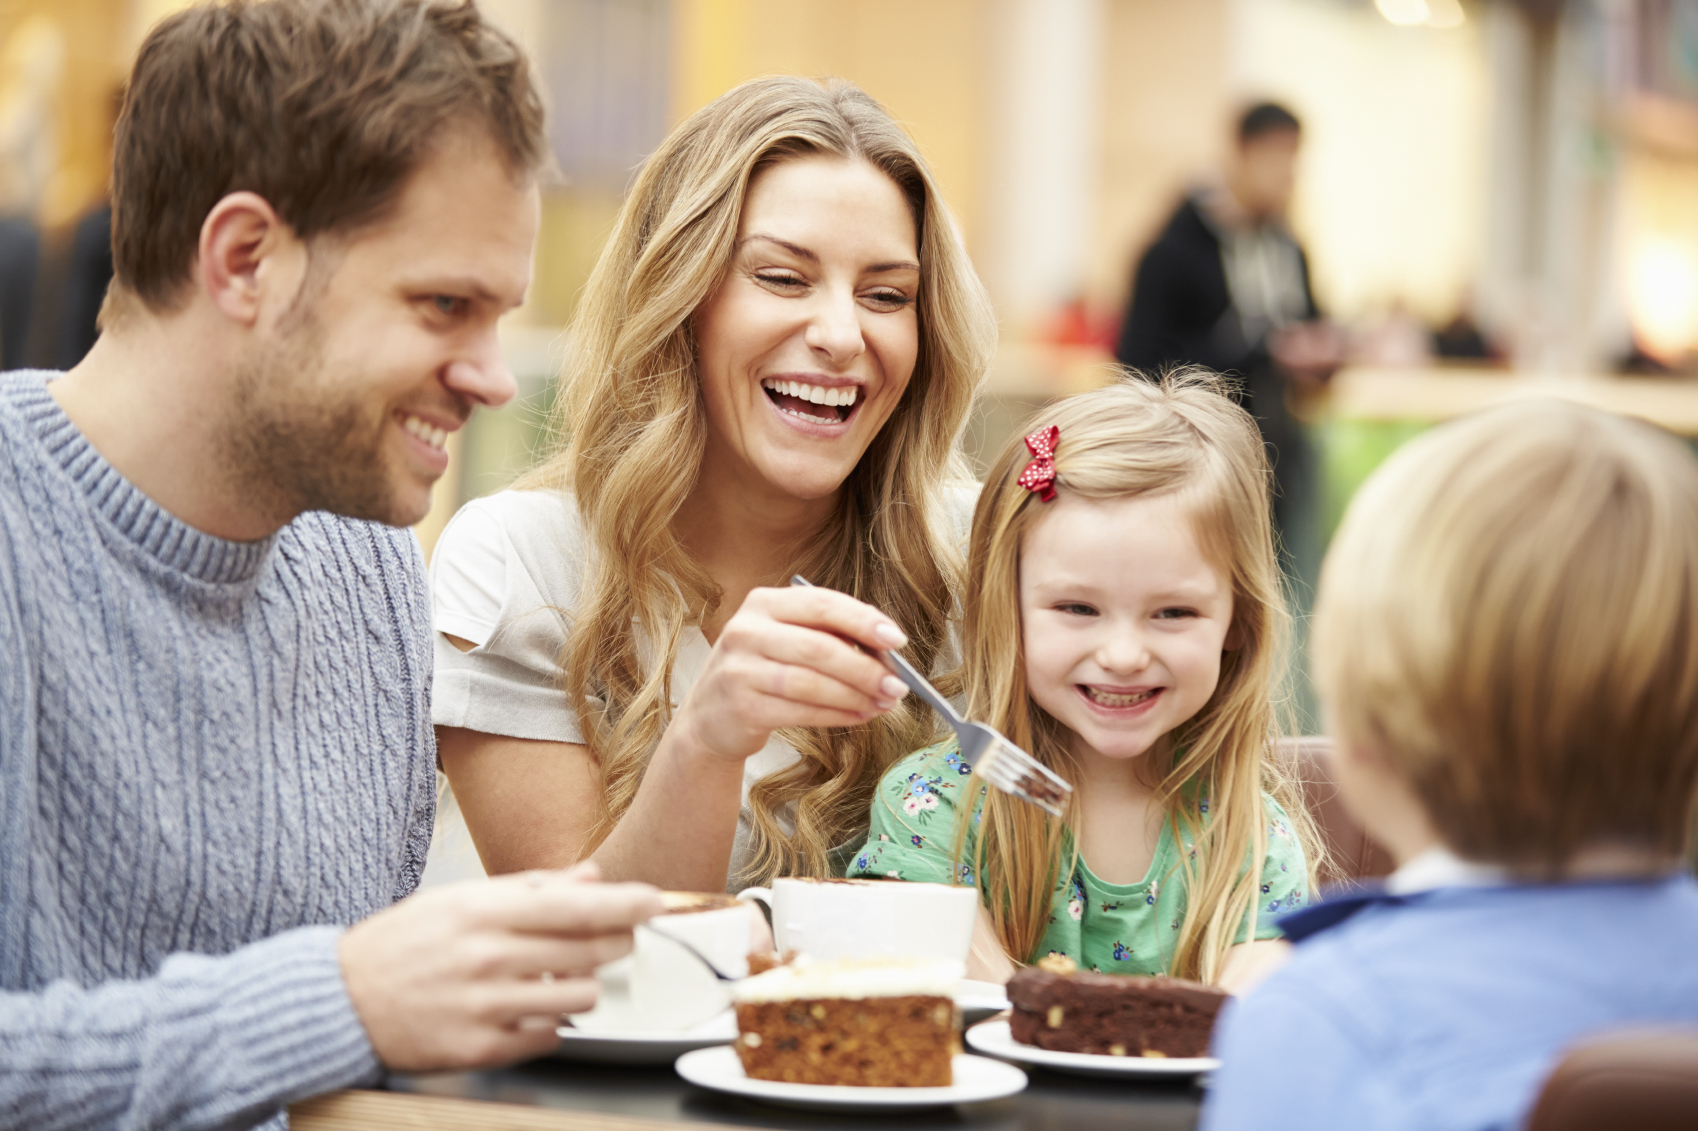 The Benefits Of Eating At A Restaurant With Family